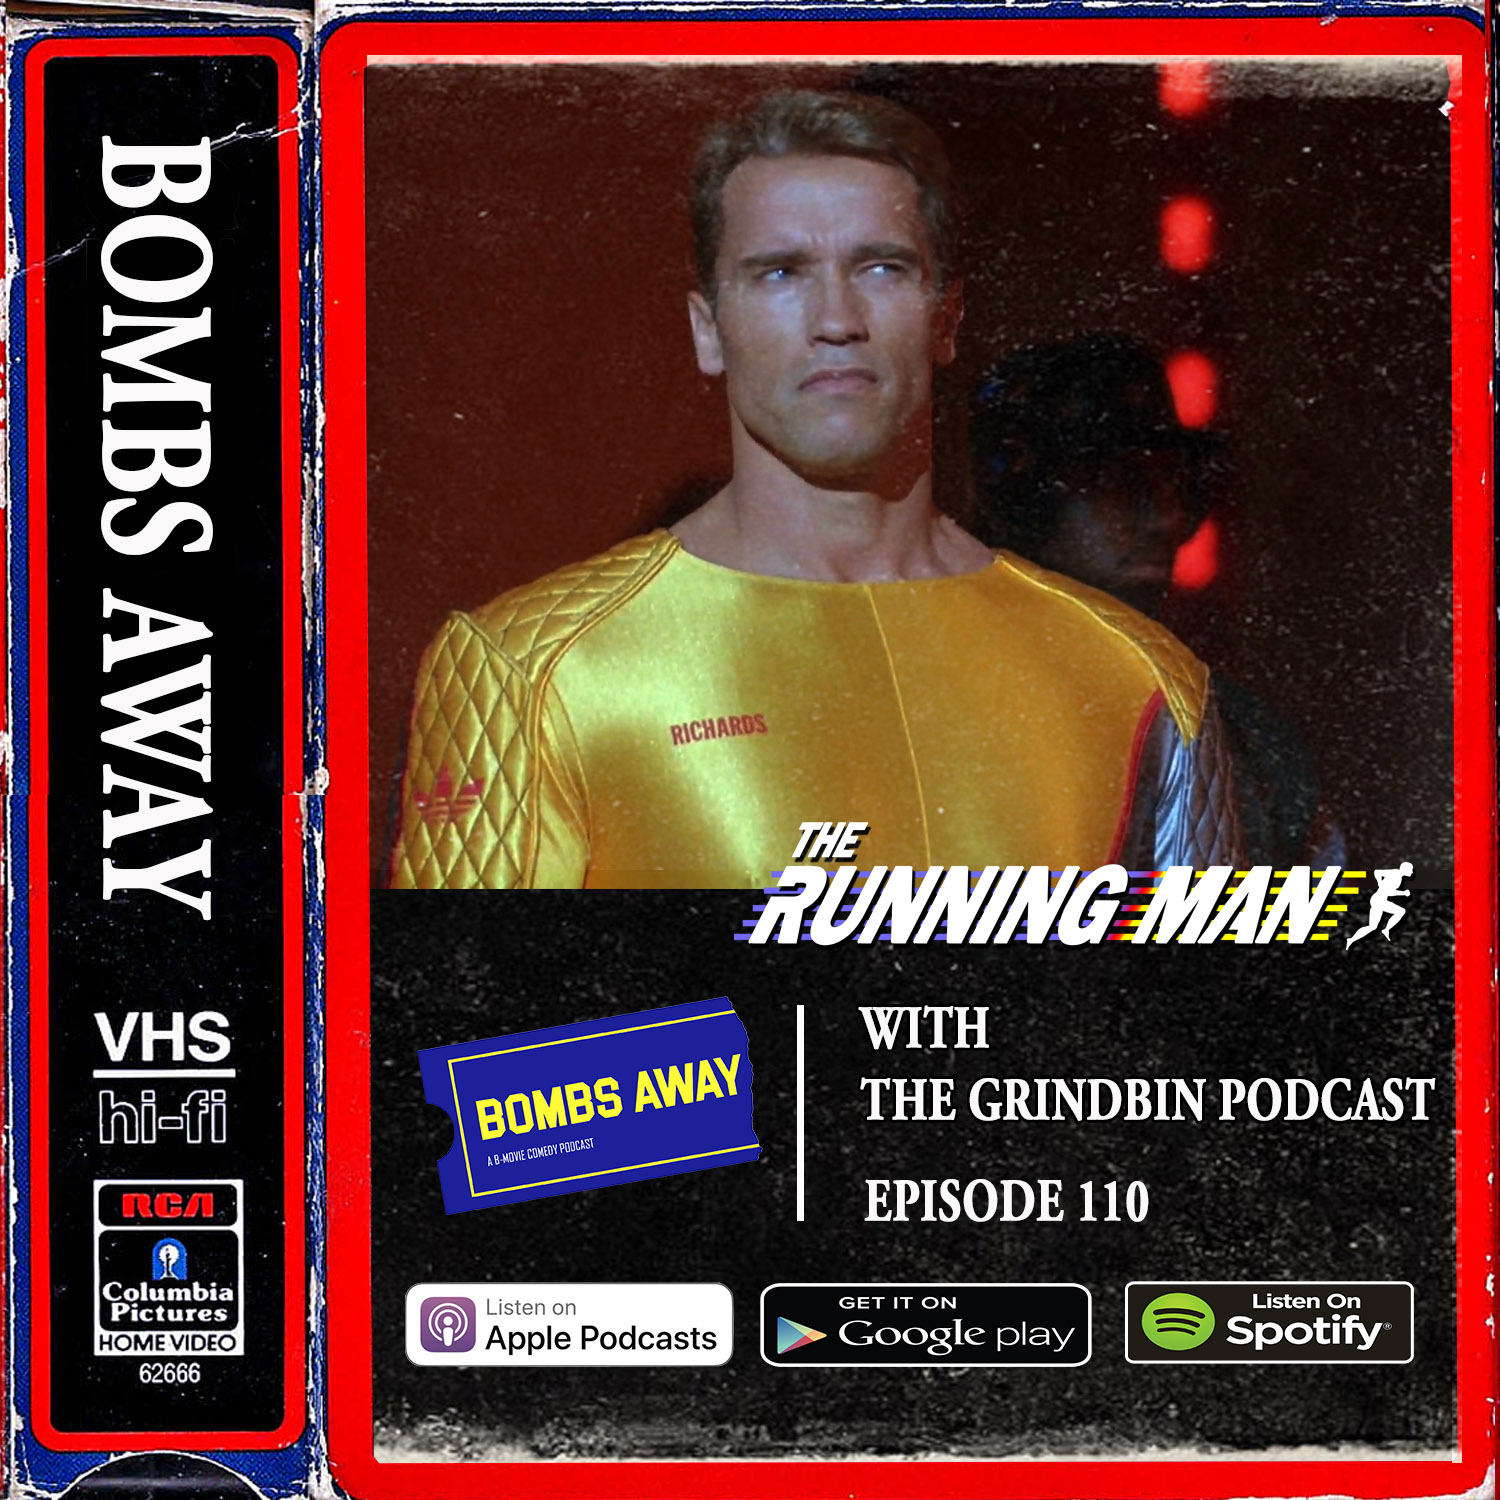 Episode 110 - The Running Man (1987) LIVE [w/ The Grindbin Podcast]